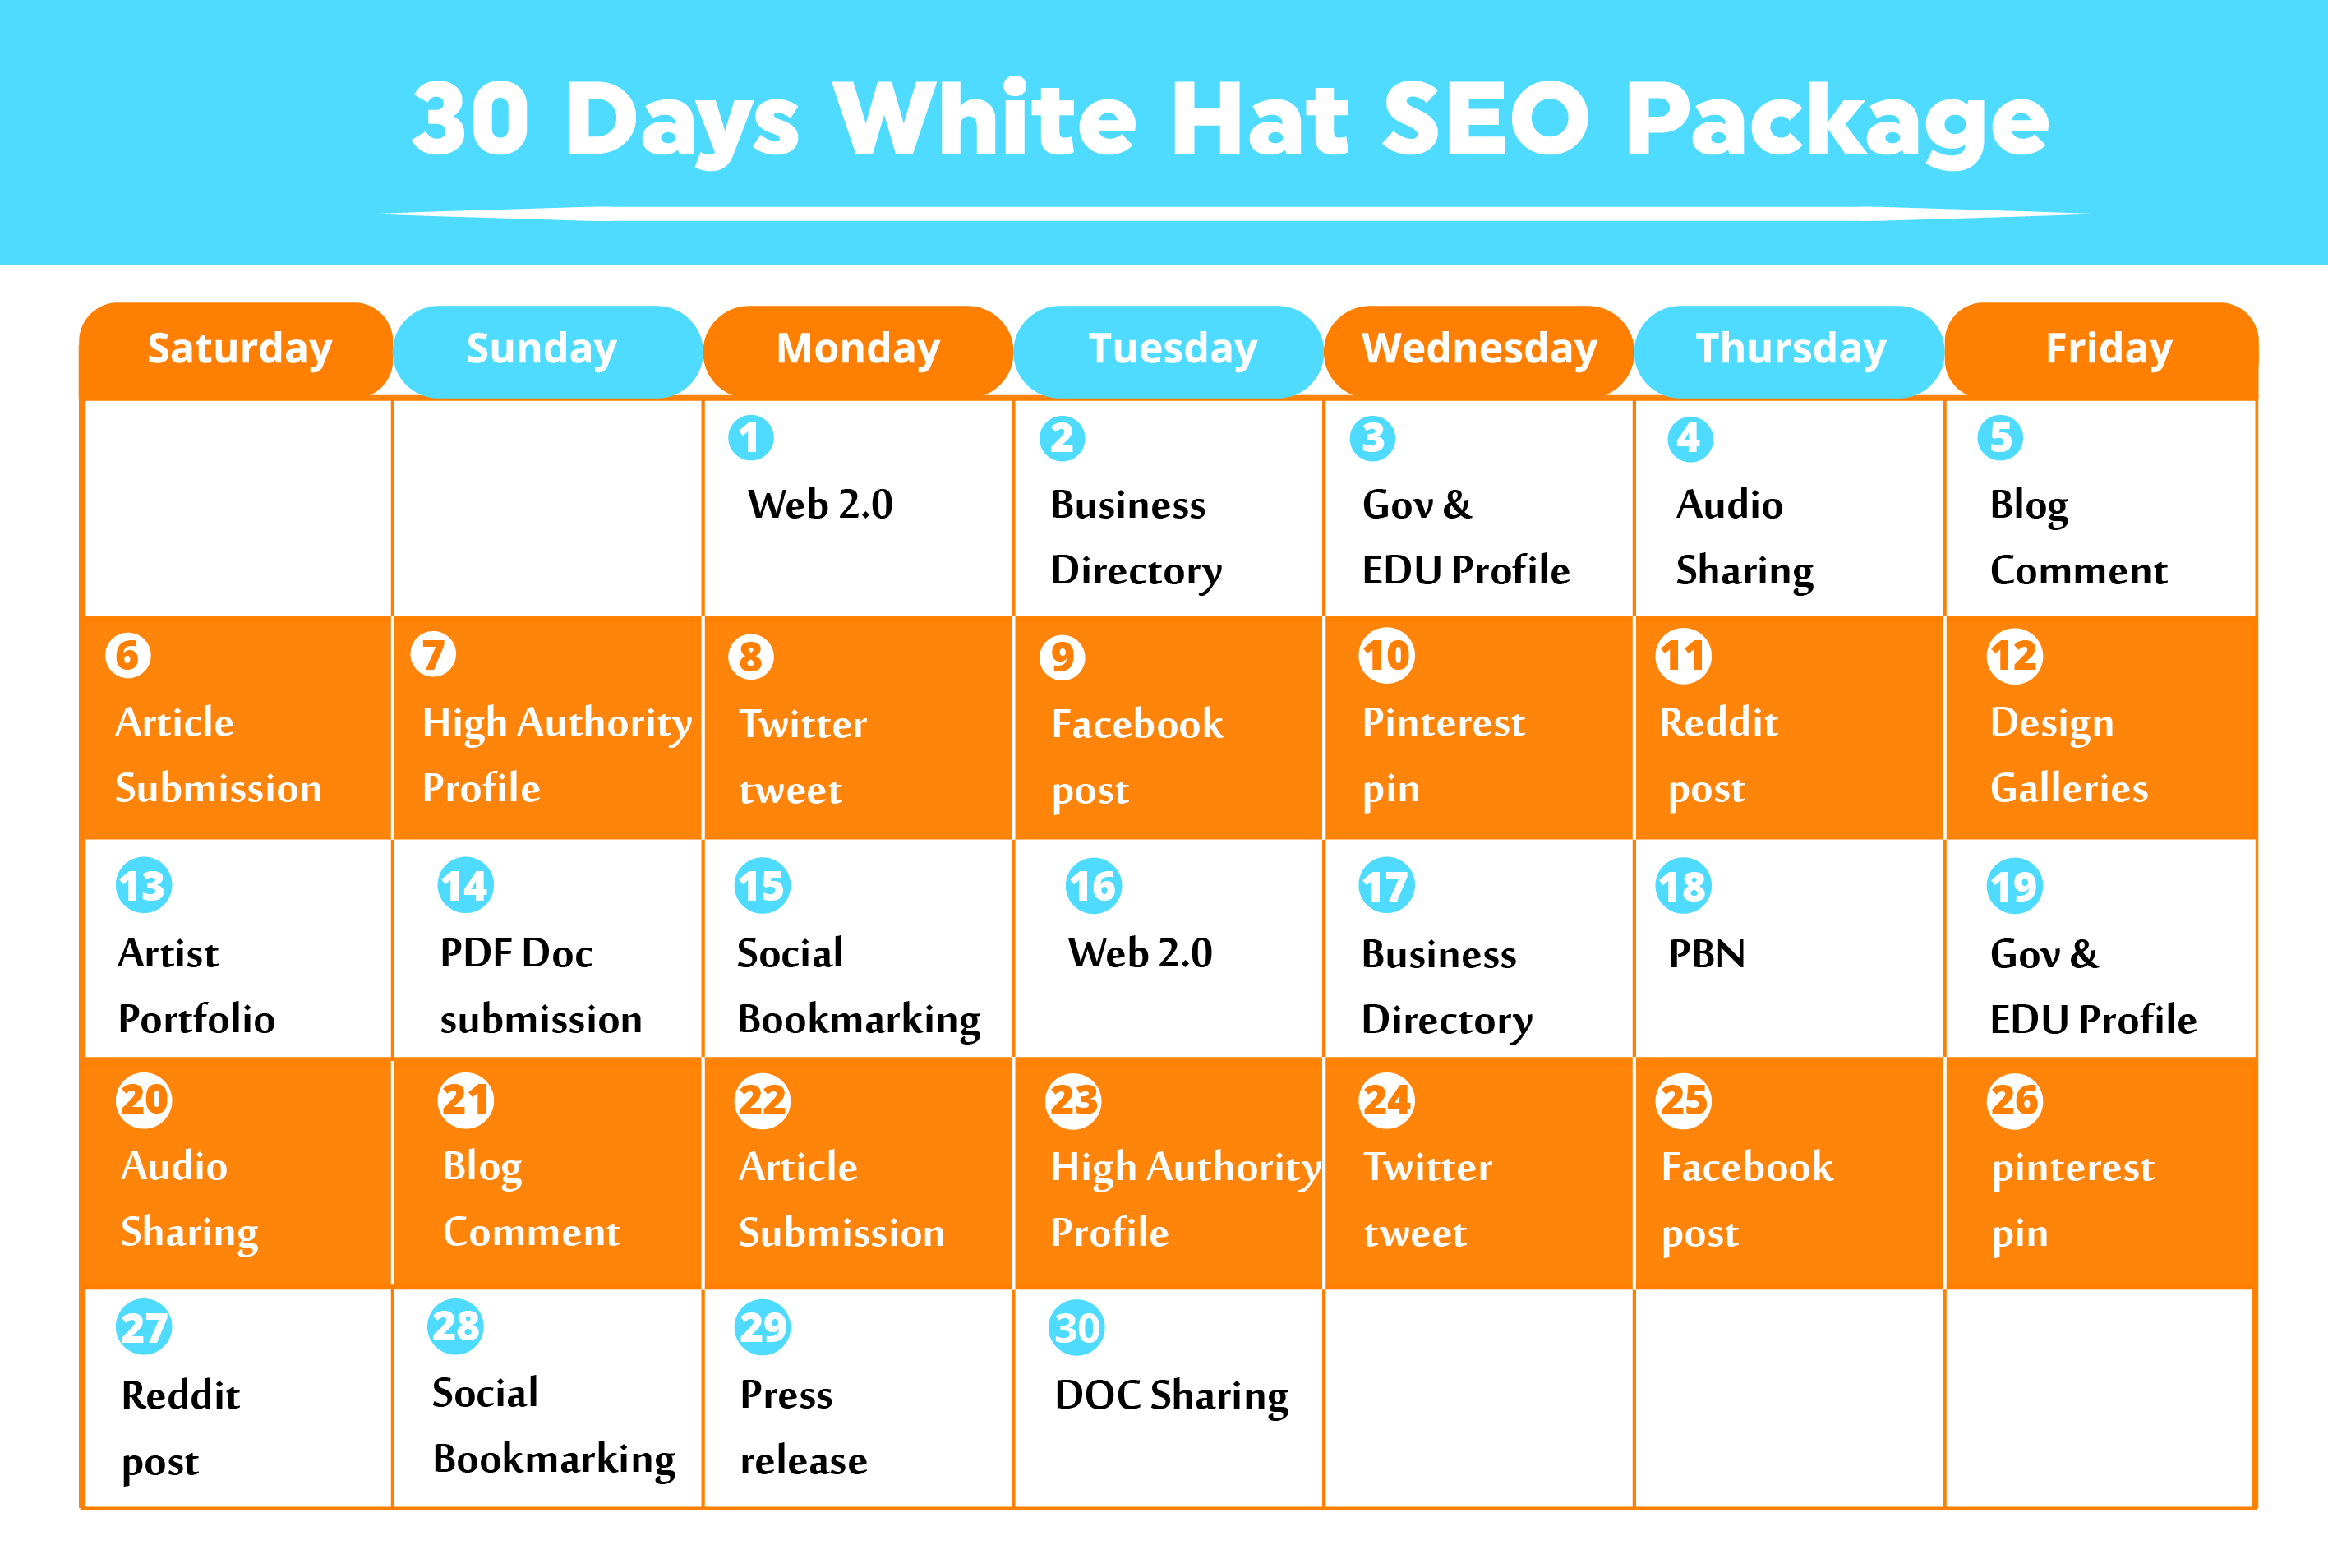 30 Days Link building White Hat SEO Package 2017 just